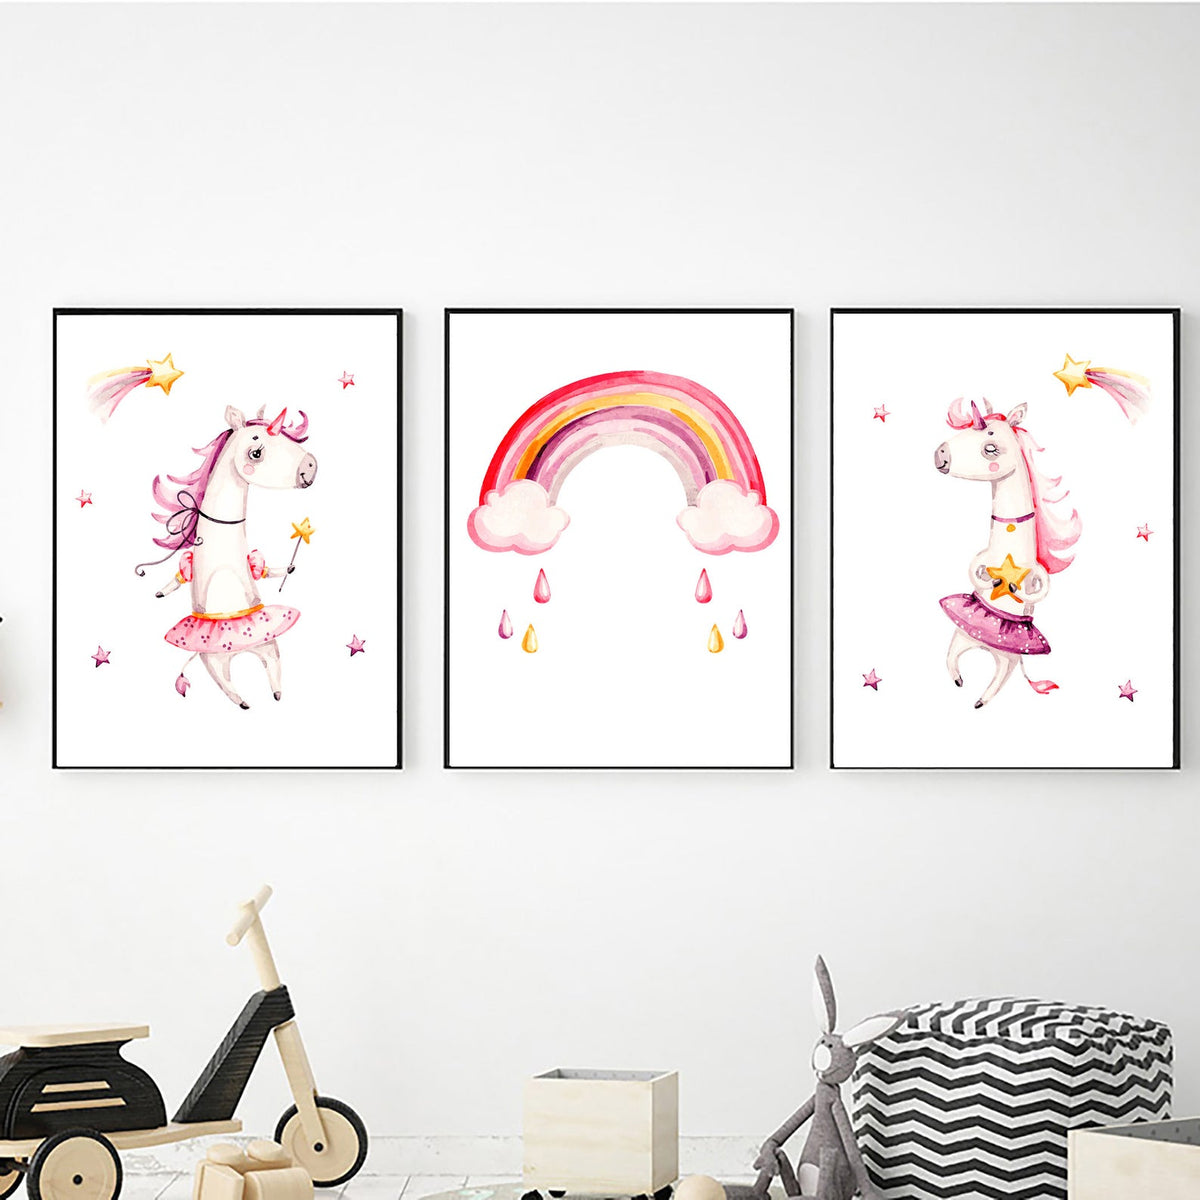 Rainbows and Unicorns freeshipping - Beautiful Spaces Store